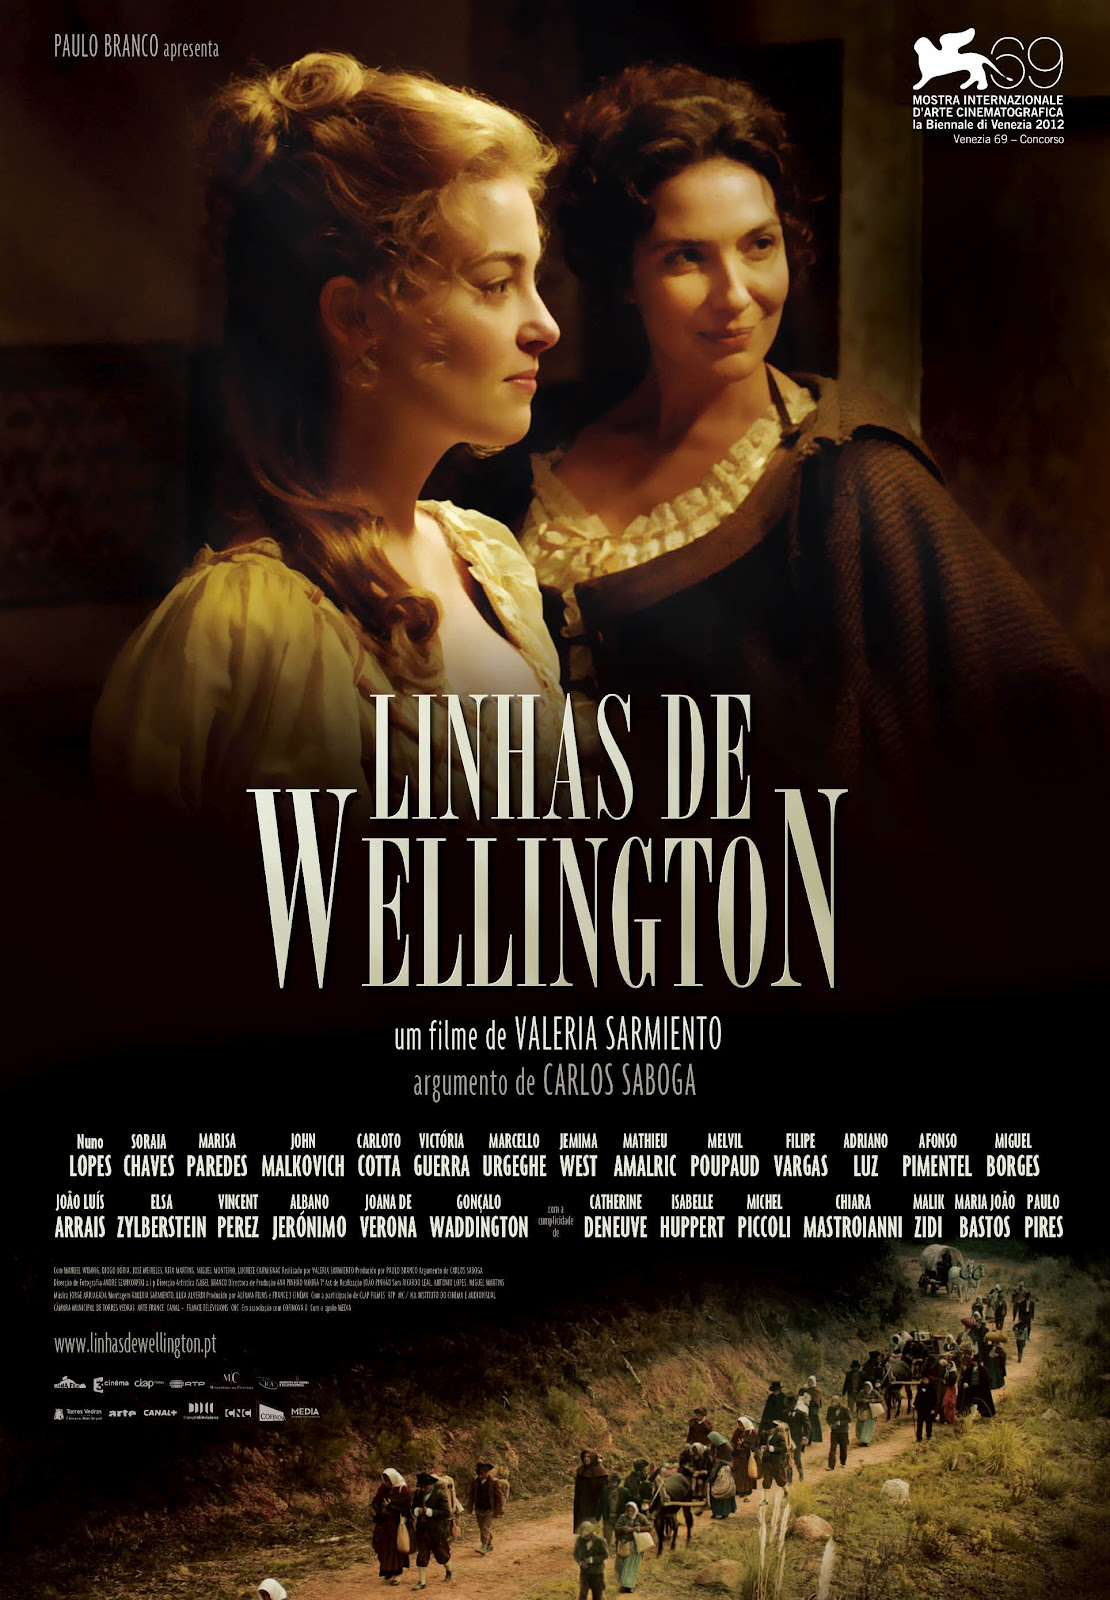 Linhas de Wellington movie